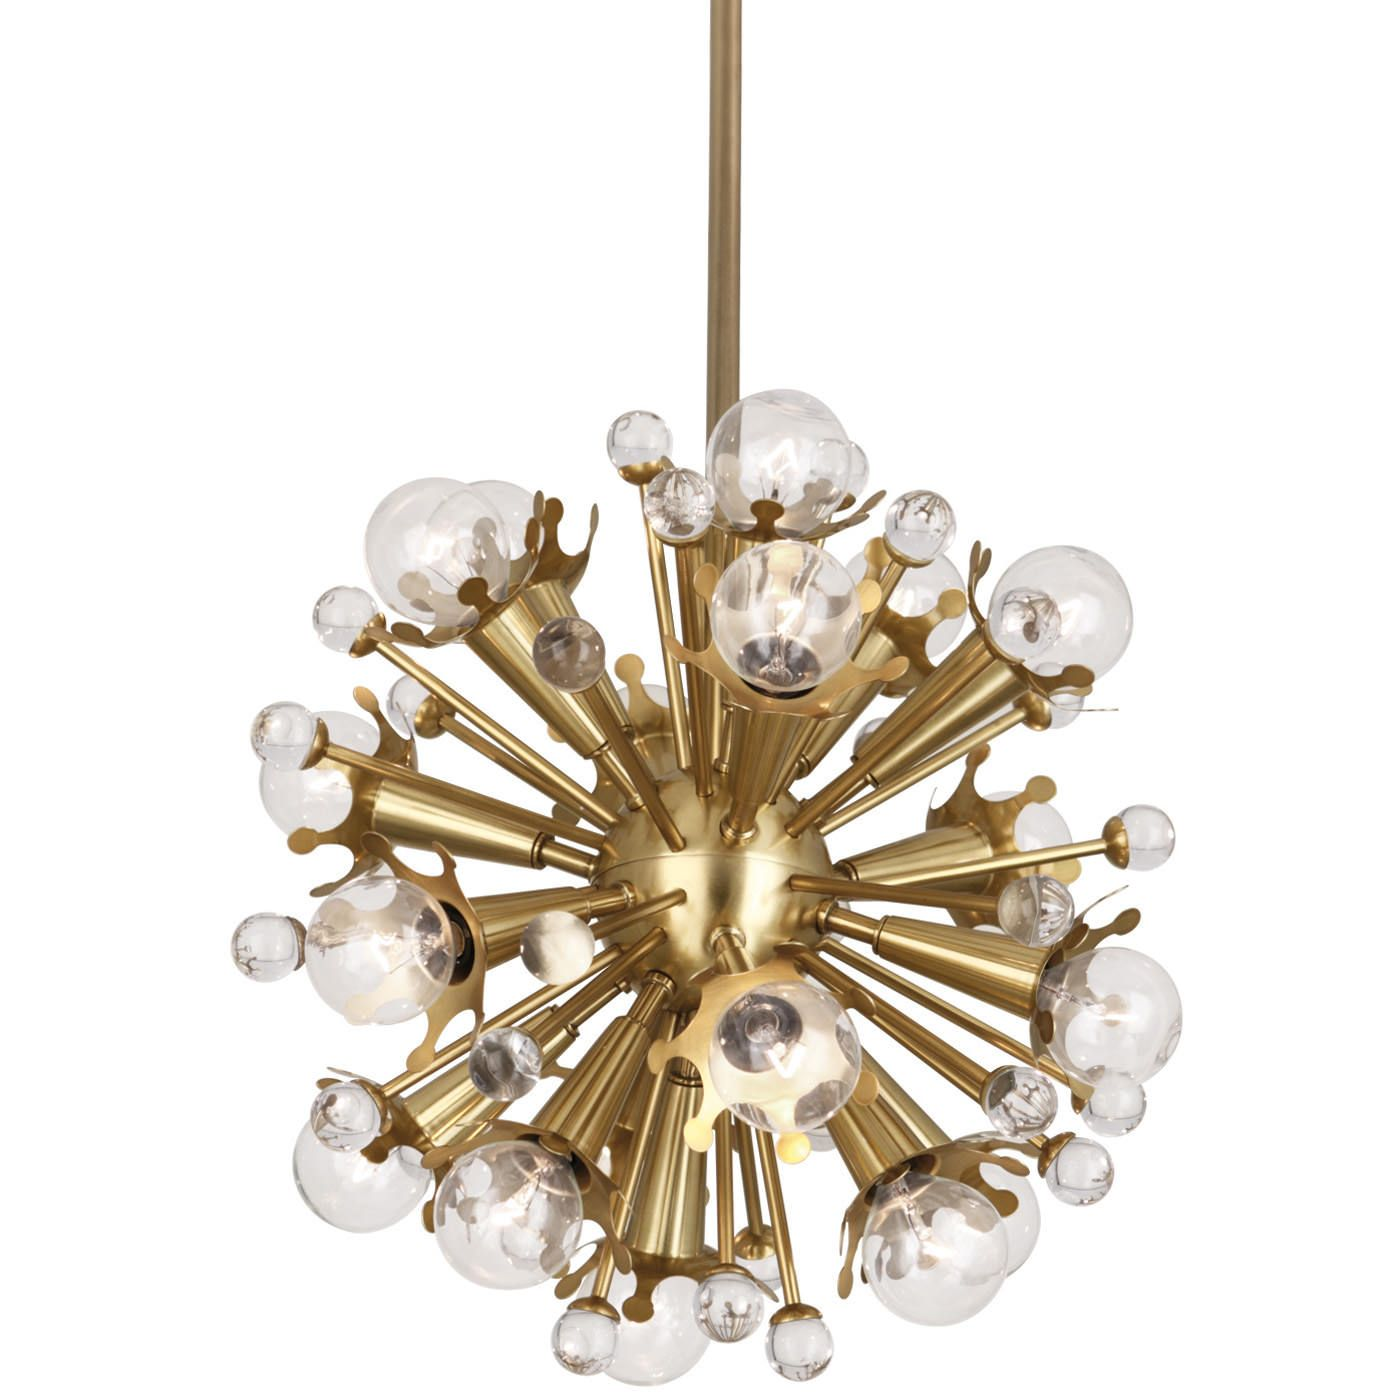 Modern glamoura groovy classic with our own twinkly twist the mini modern glamoura groovy classic with our own twinkly twist the mini sputnik chandelier arubaitofo Images